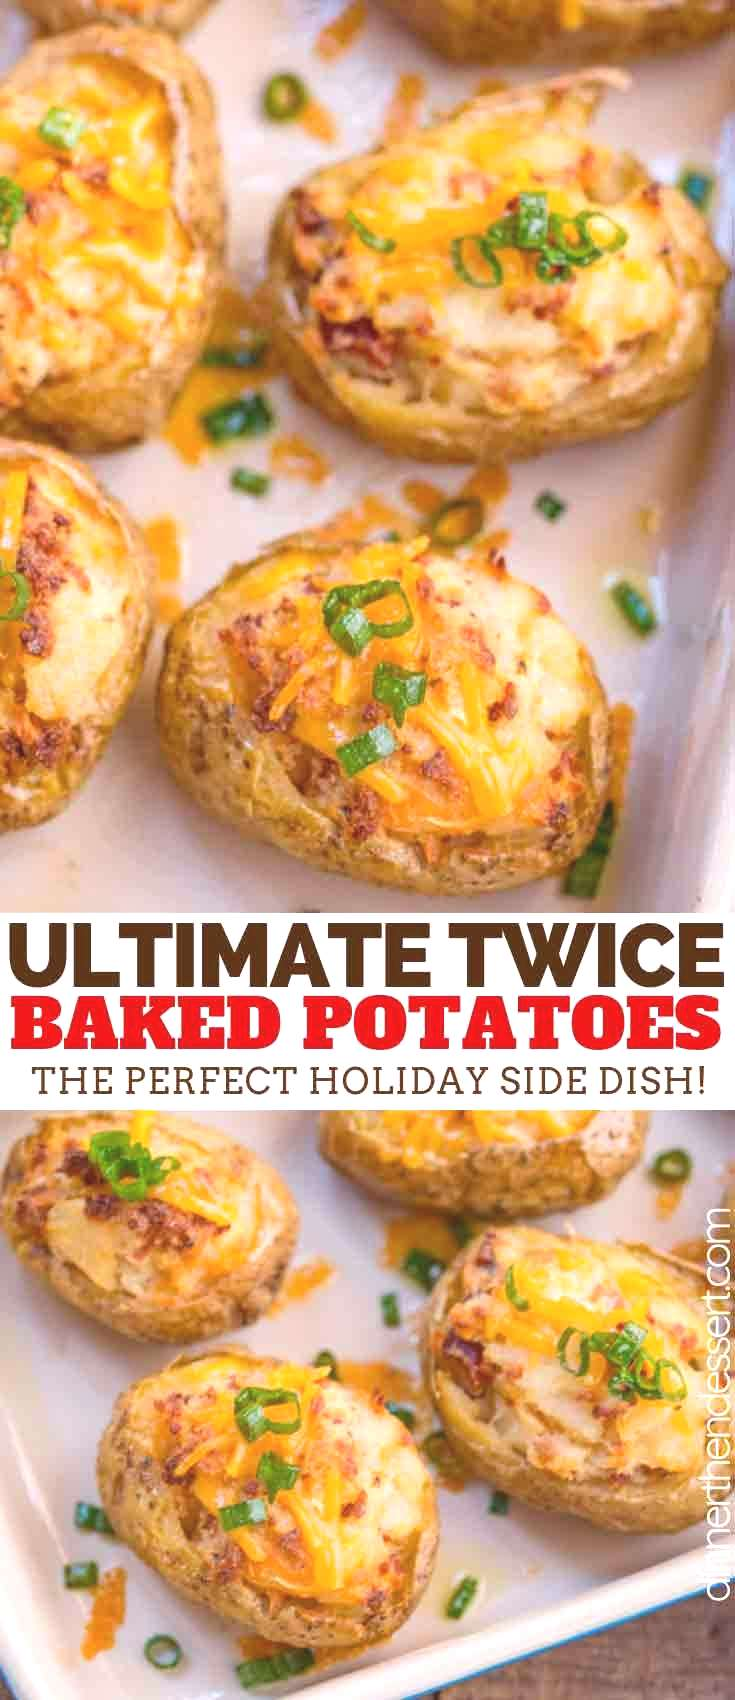 Twice Baked Potatoes made with russet potatoes, cheddar cheese, sour cream, and bacon are creamy on